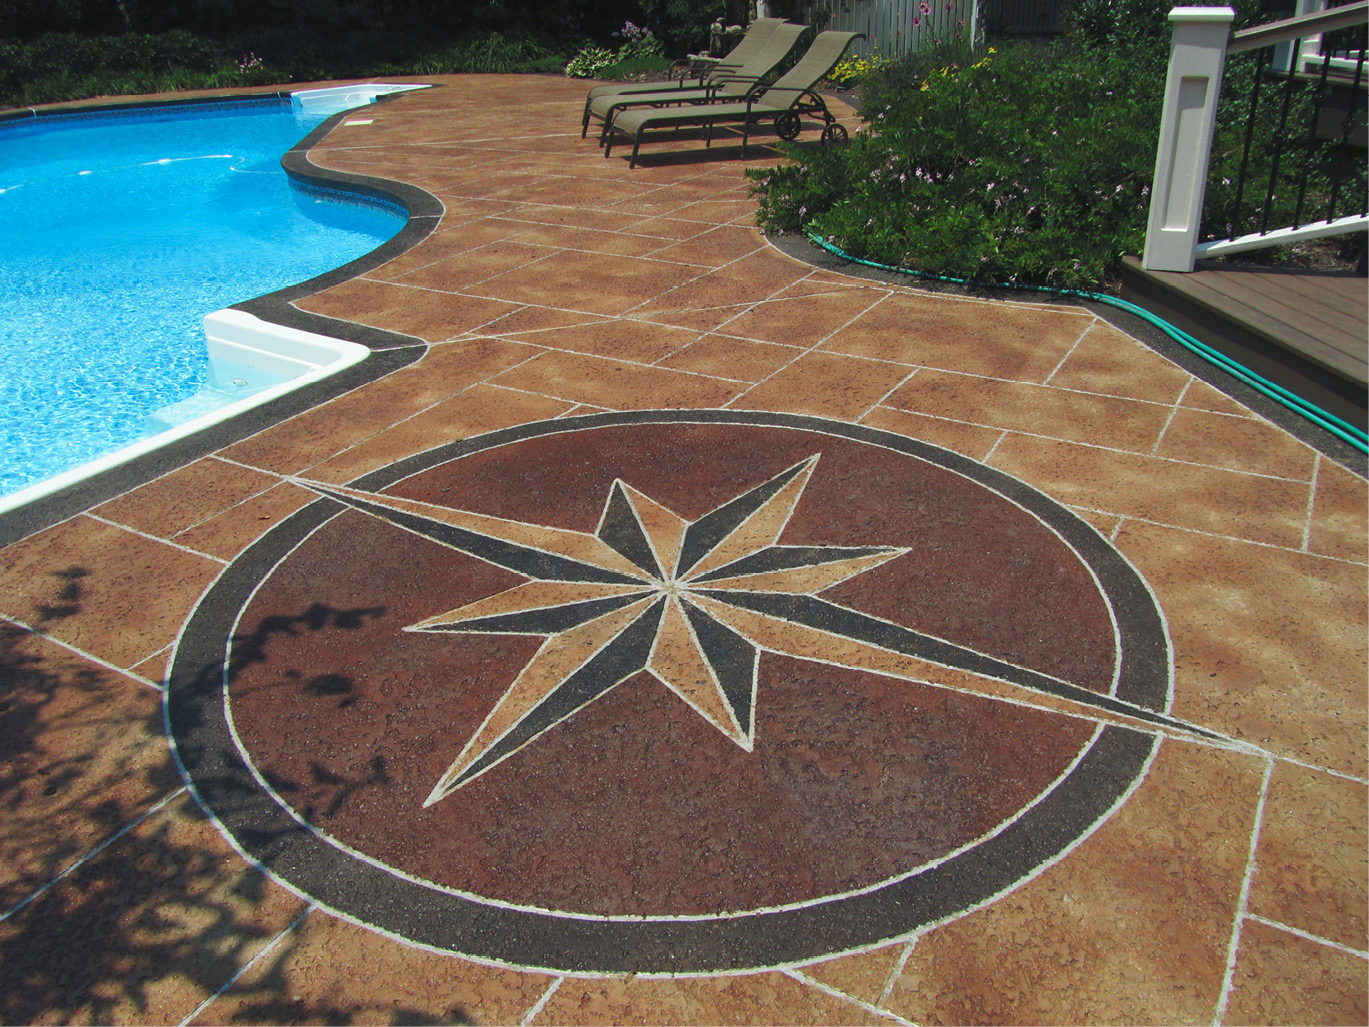 Step By Step Lesson To Drawing A Compass Rose Concrete Decor